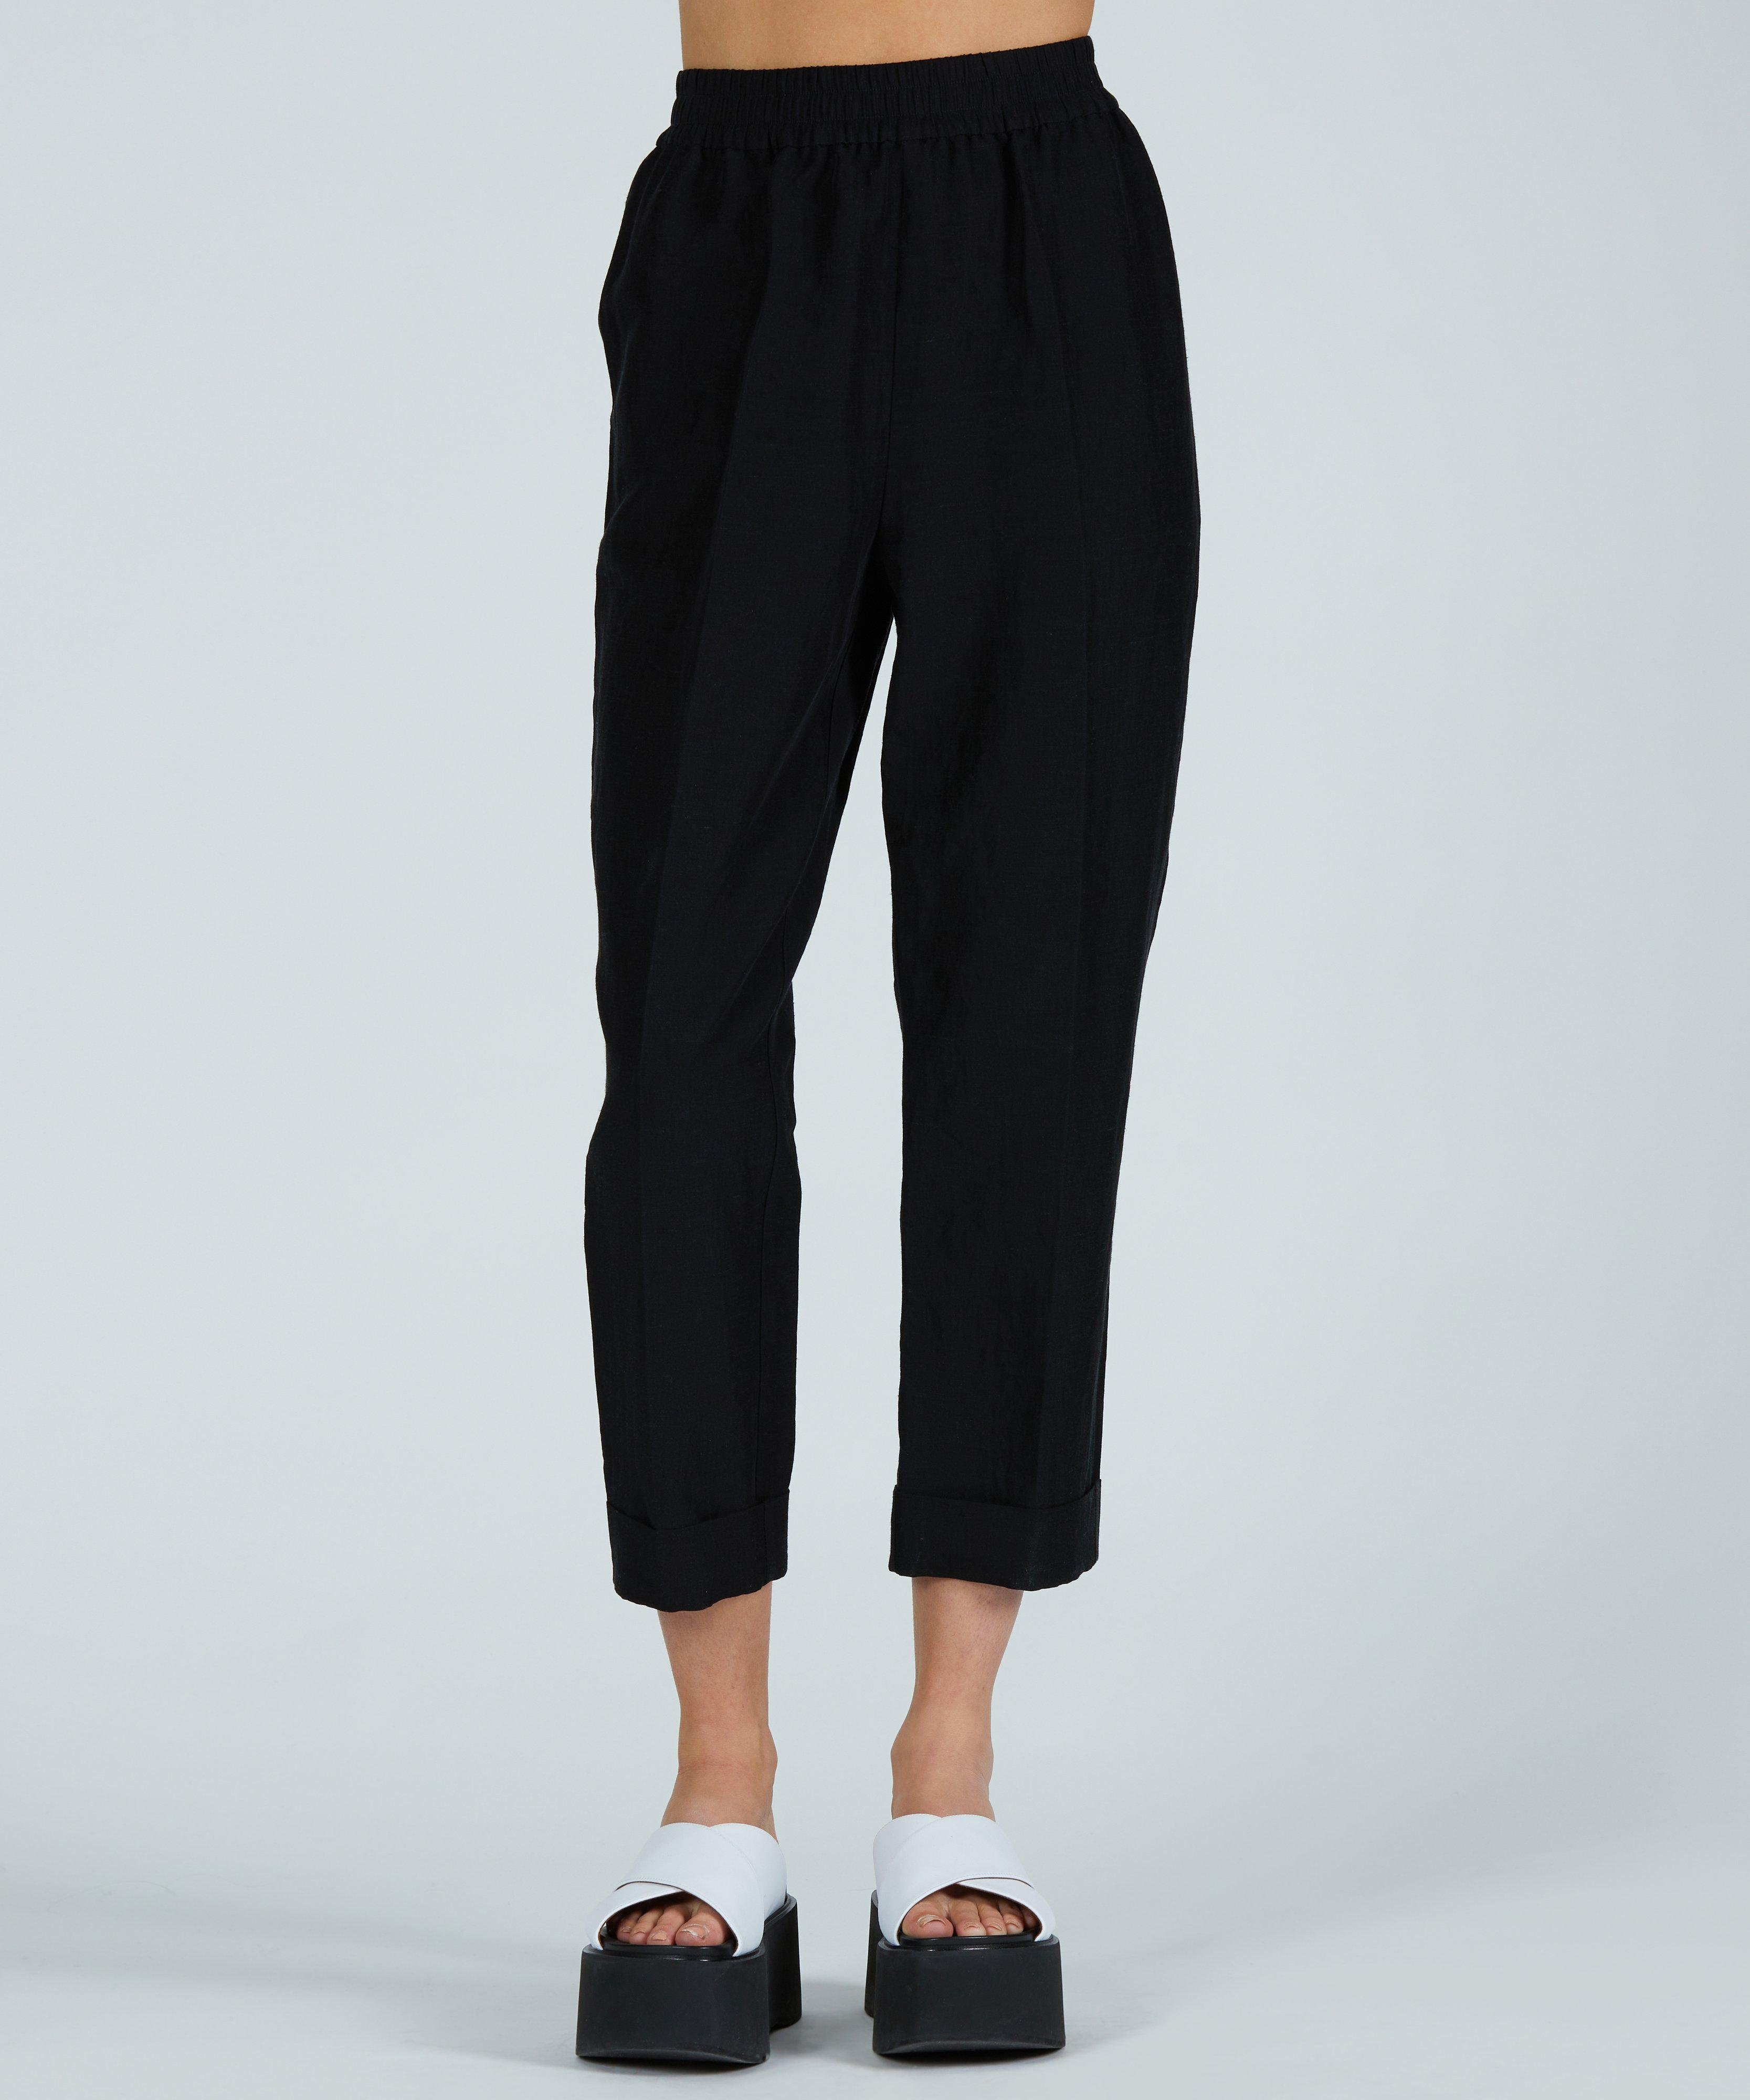 Linen Rayon Pull-On Cuff Pant - Black 0